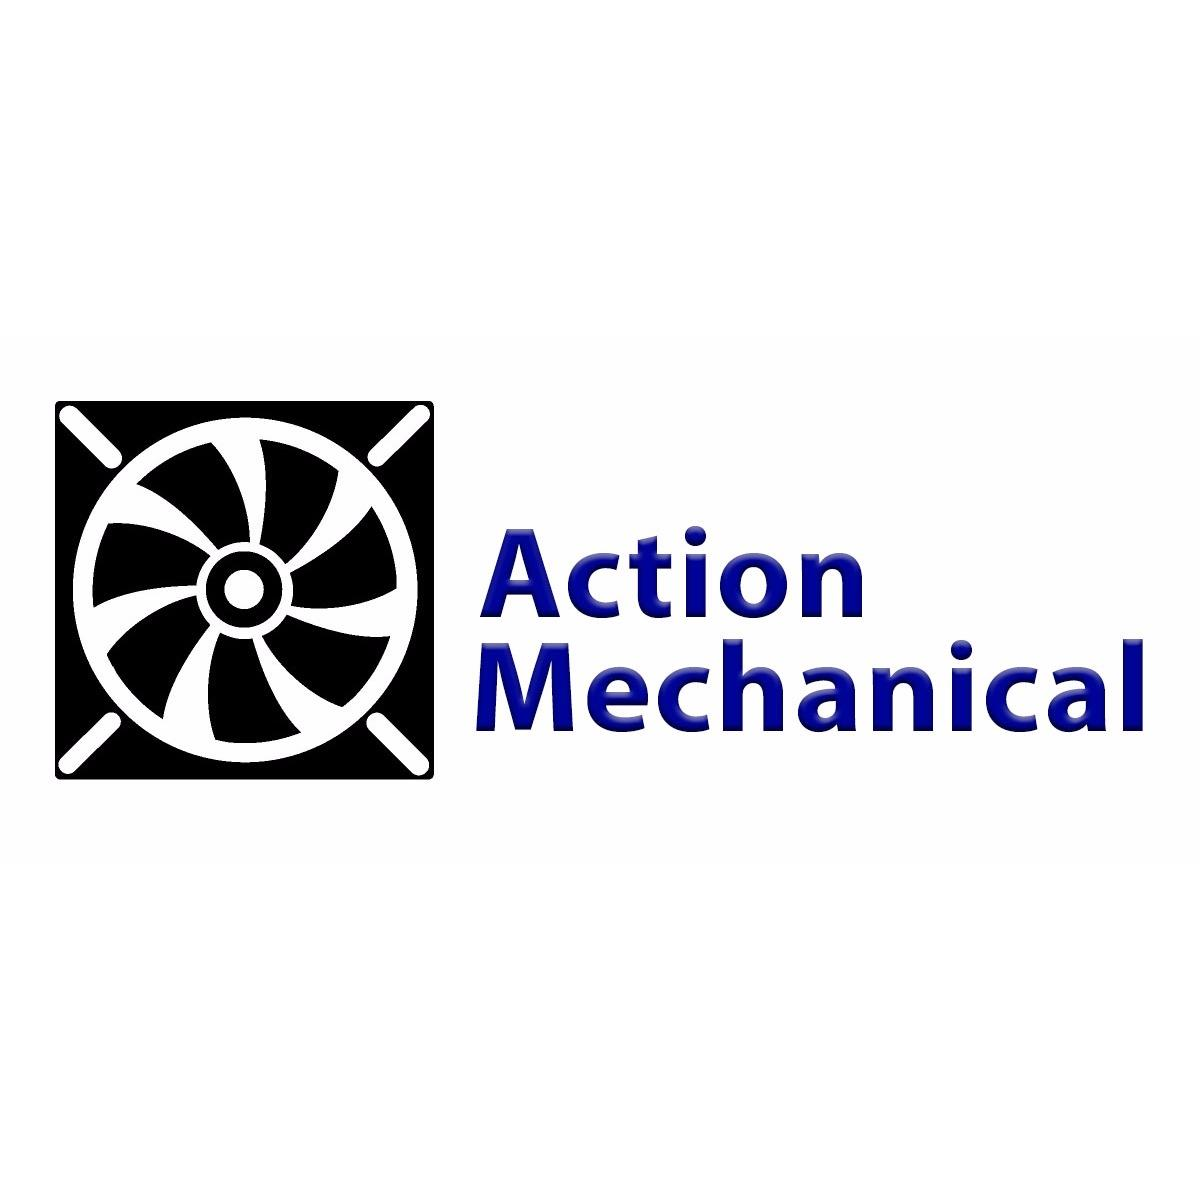 Action Mechanical